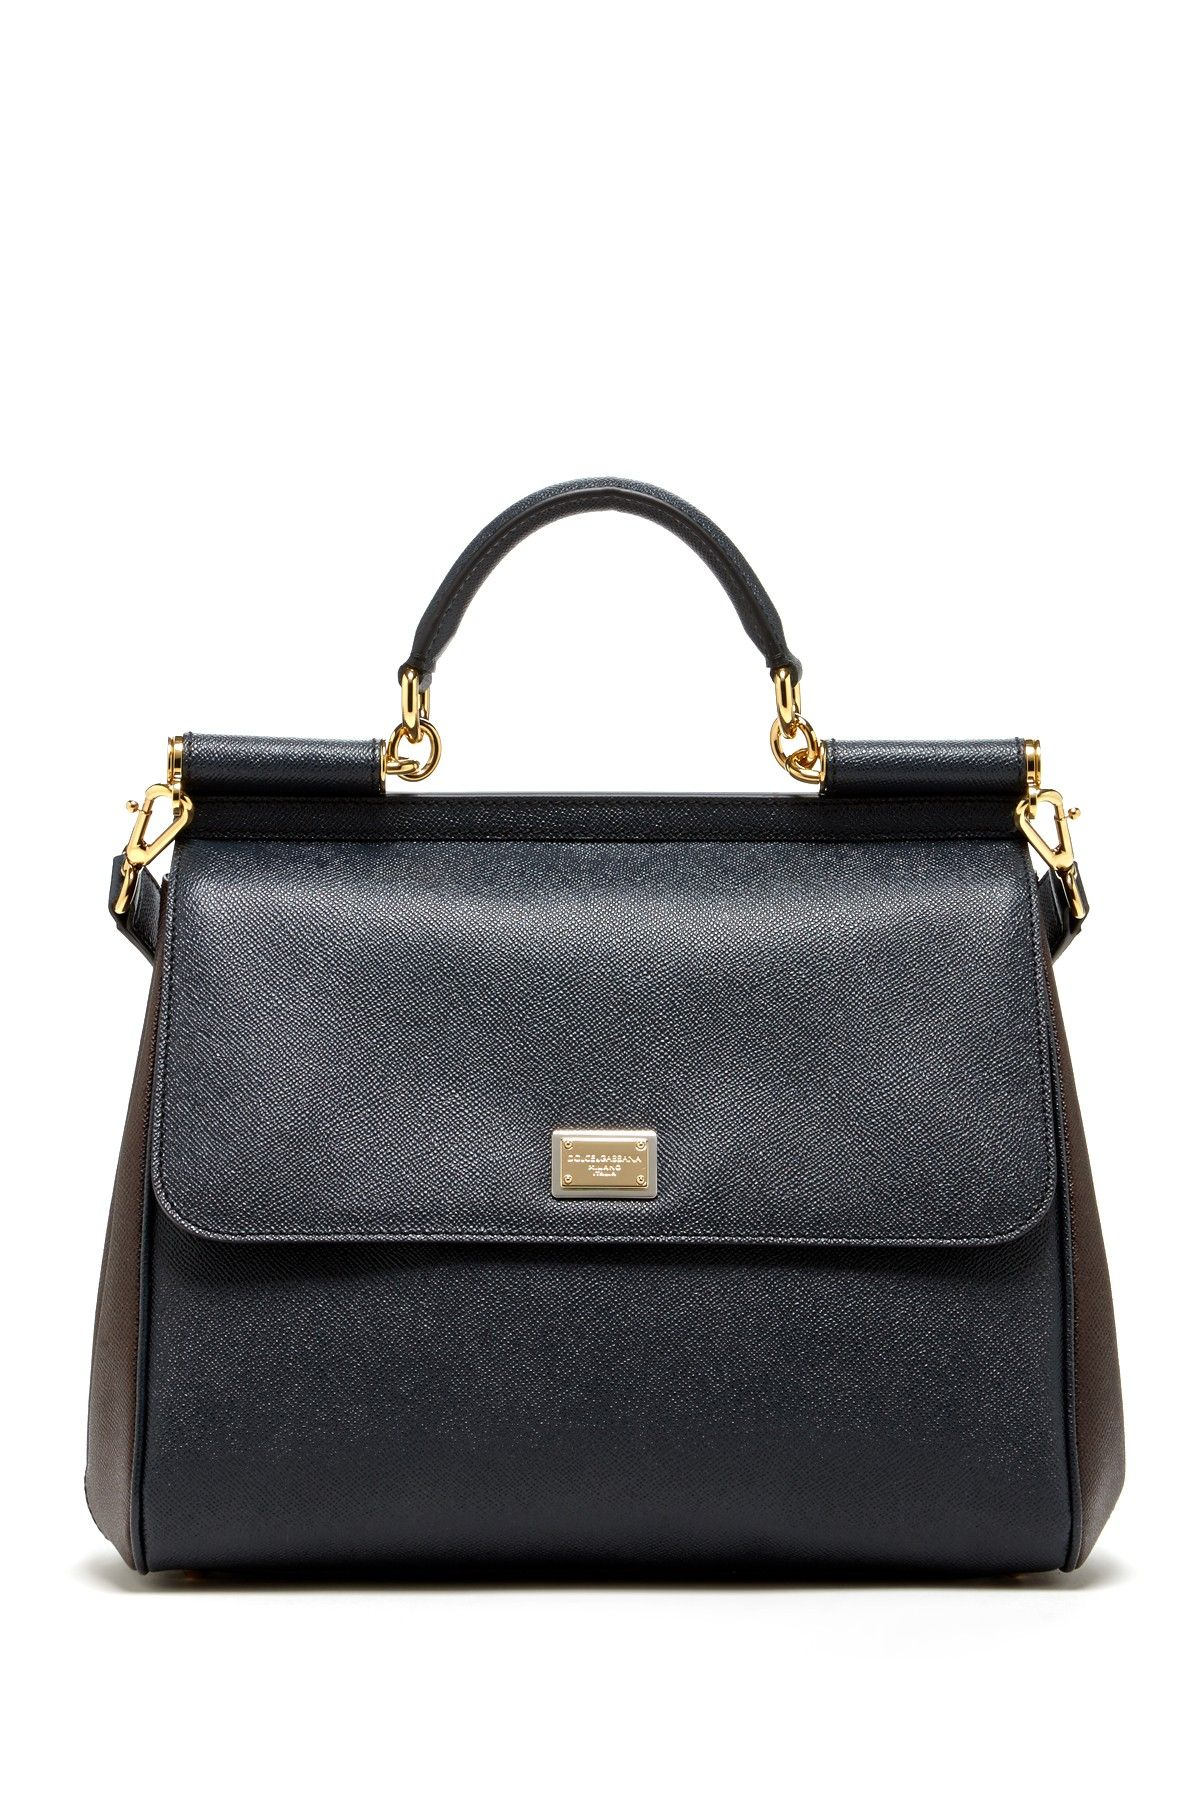 Dolce & Gabbana Borsa A Mano Dauphine Satchel// Have one like this not D & G! but is an antique!